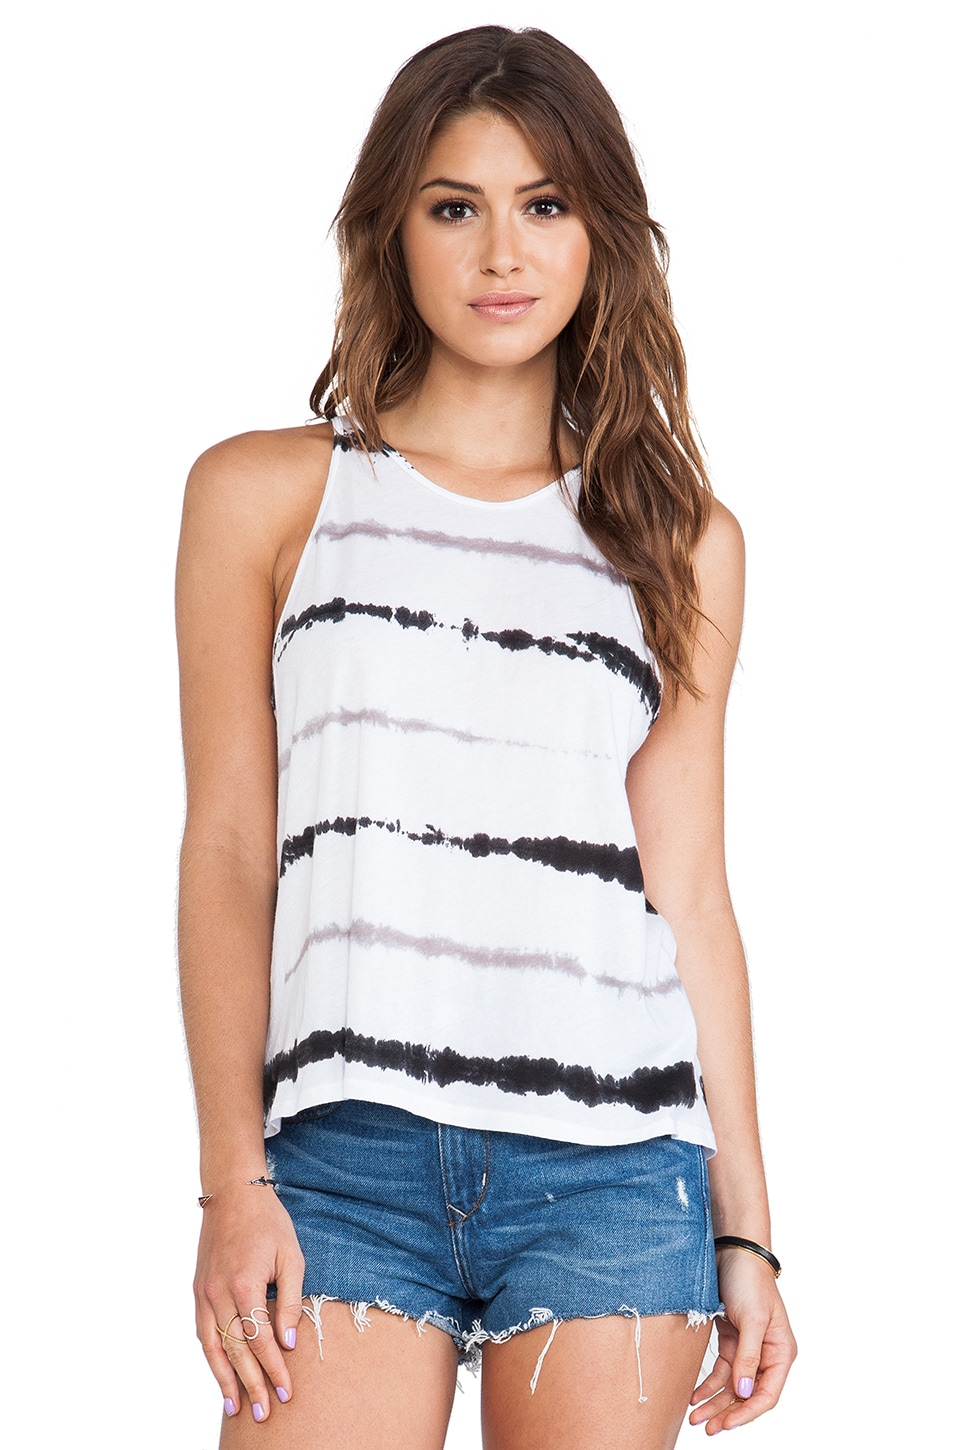 Enza Costa Tissue Jersey Crop Tank in Sehera Stripe